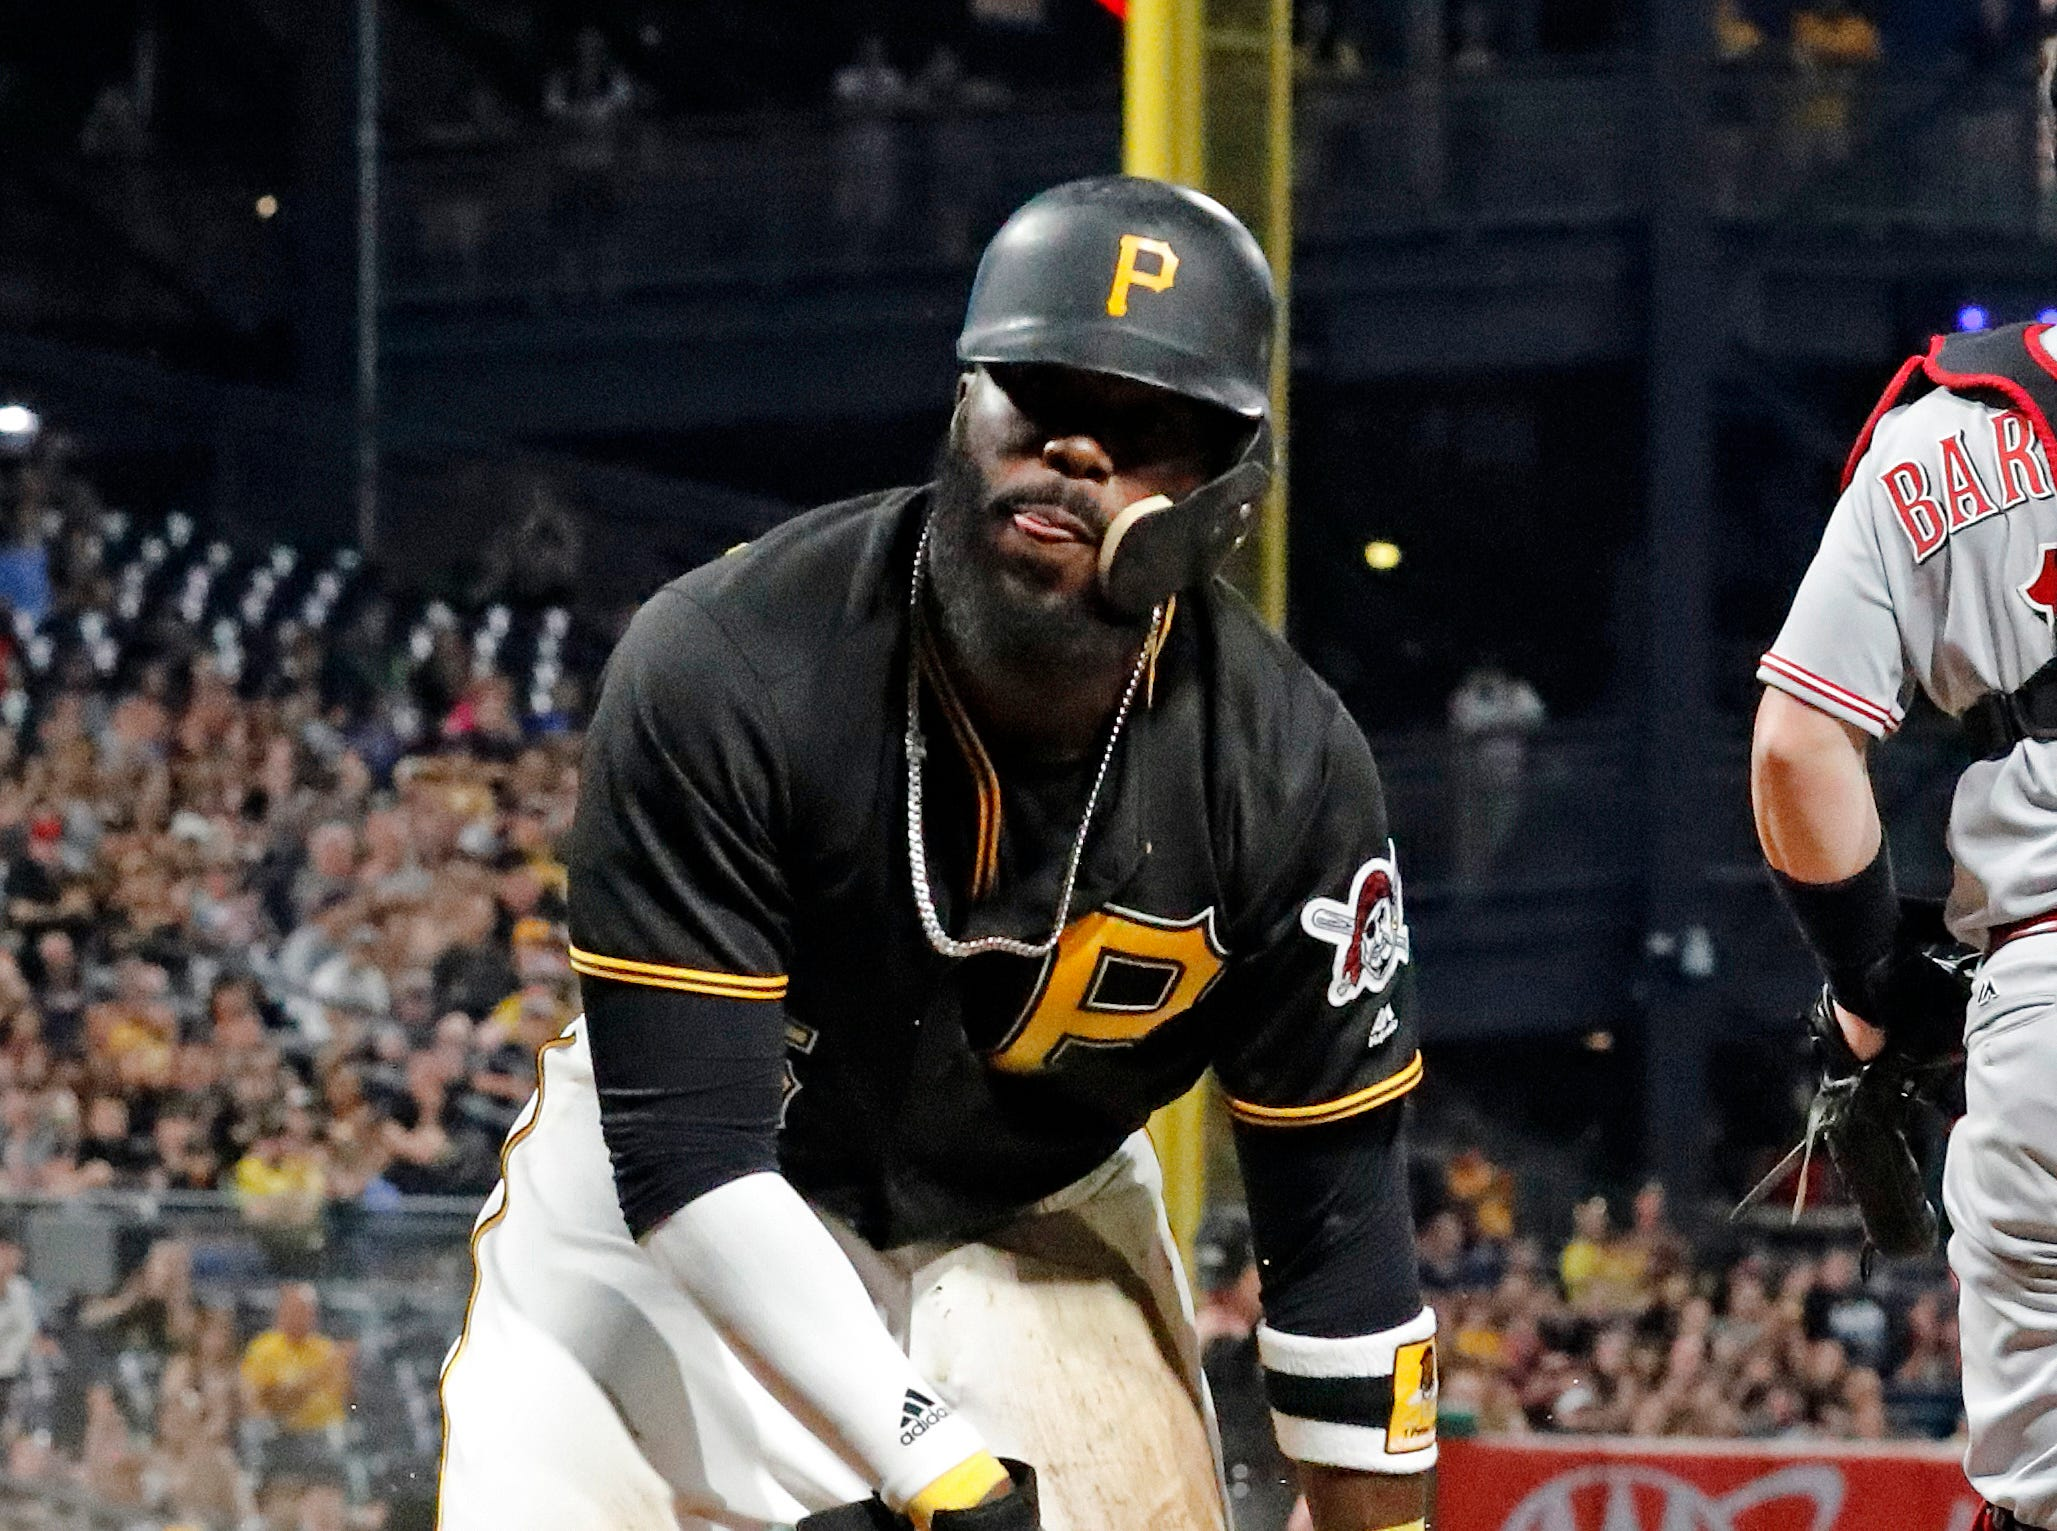 Pittsburgh Pirates' Josh Harrison scores on a sacrifice fly by Colin Moran off Cincinnati Reds relief pitcher Michael Lorenzen during the sixth inning of a baseball game in Pittsburgh, Friday, June 15, 2018.